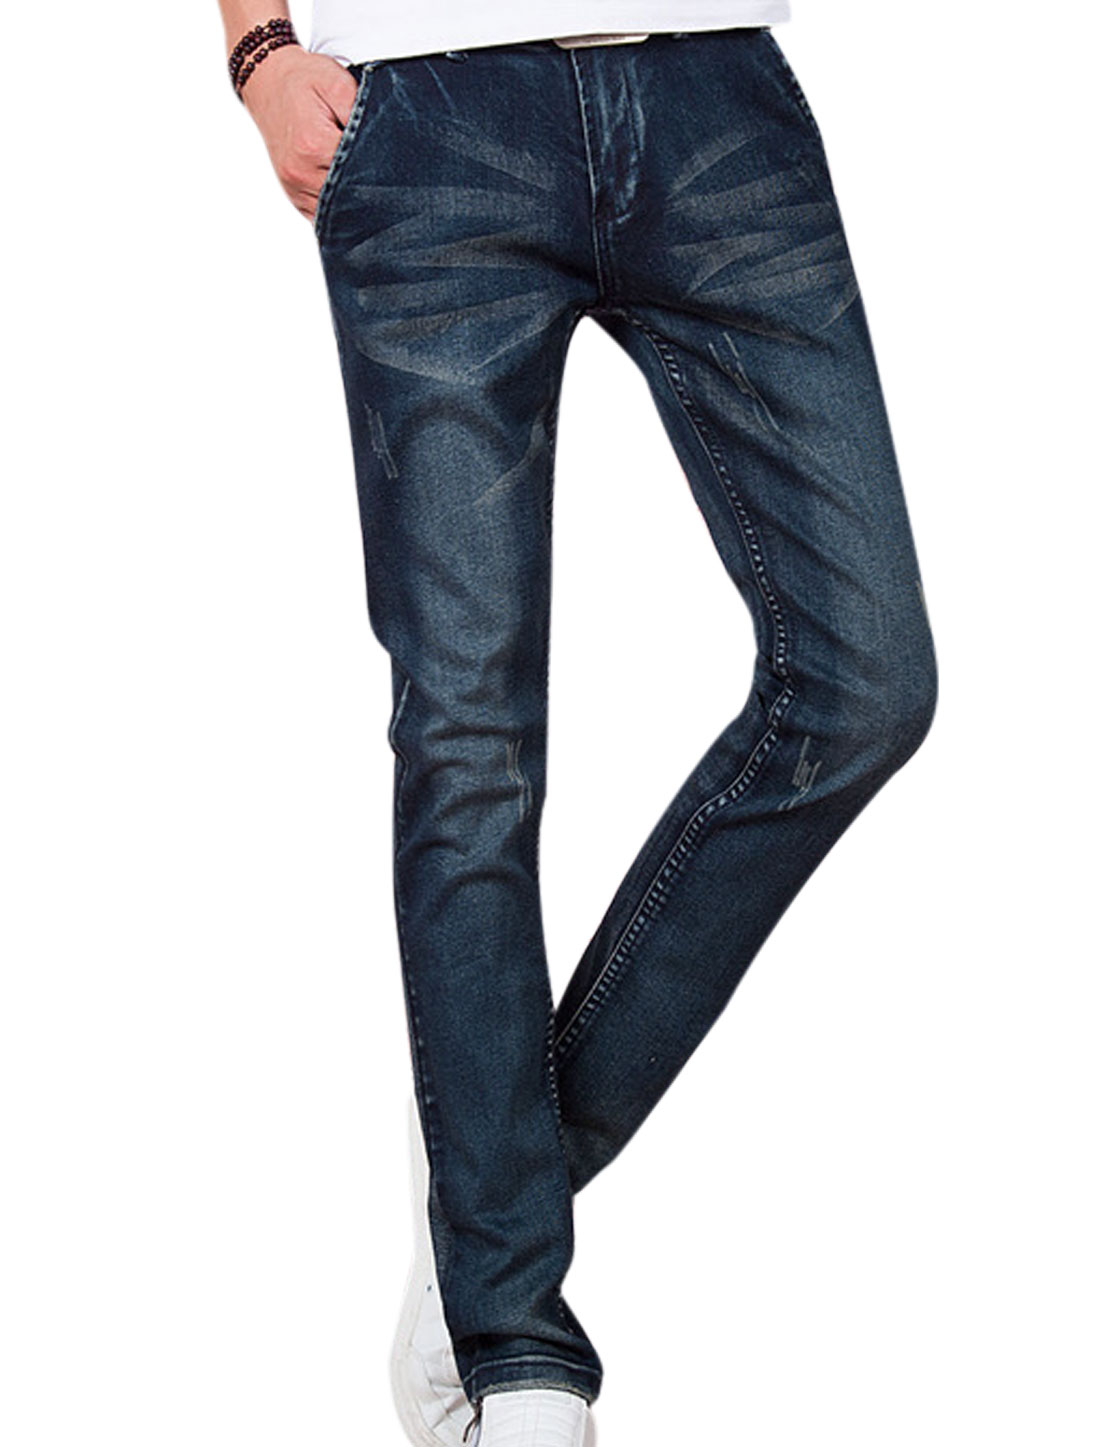 Low Rise Destroyed Design New Style Jeans for Men Navy Blue W30